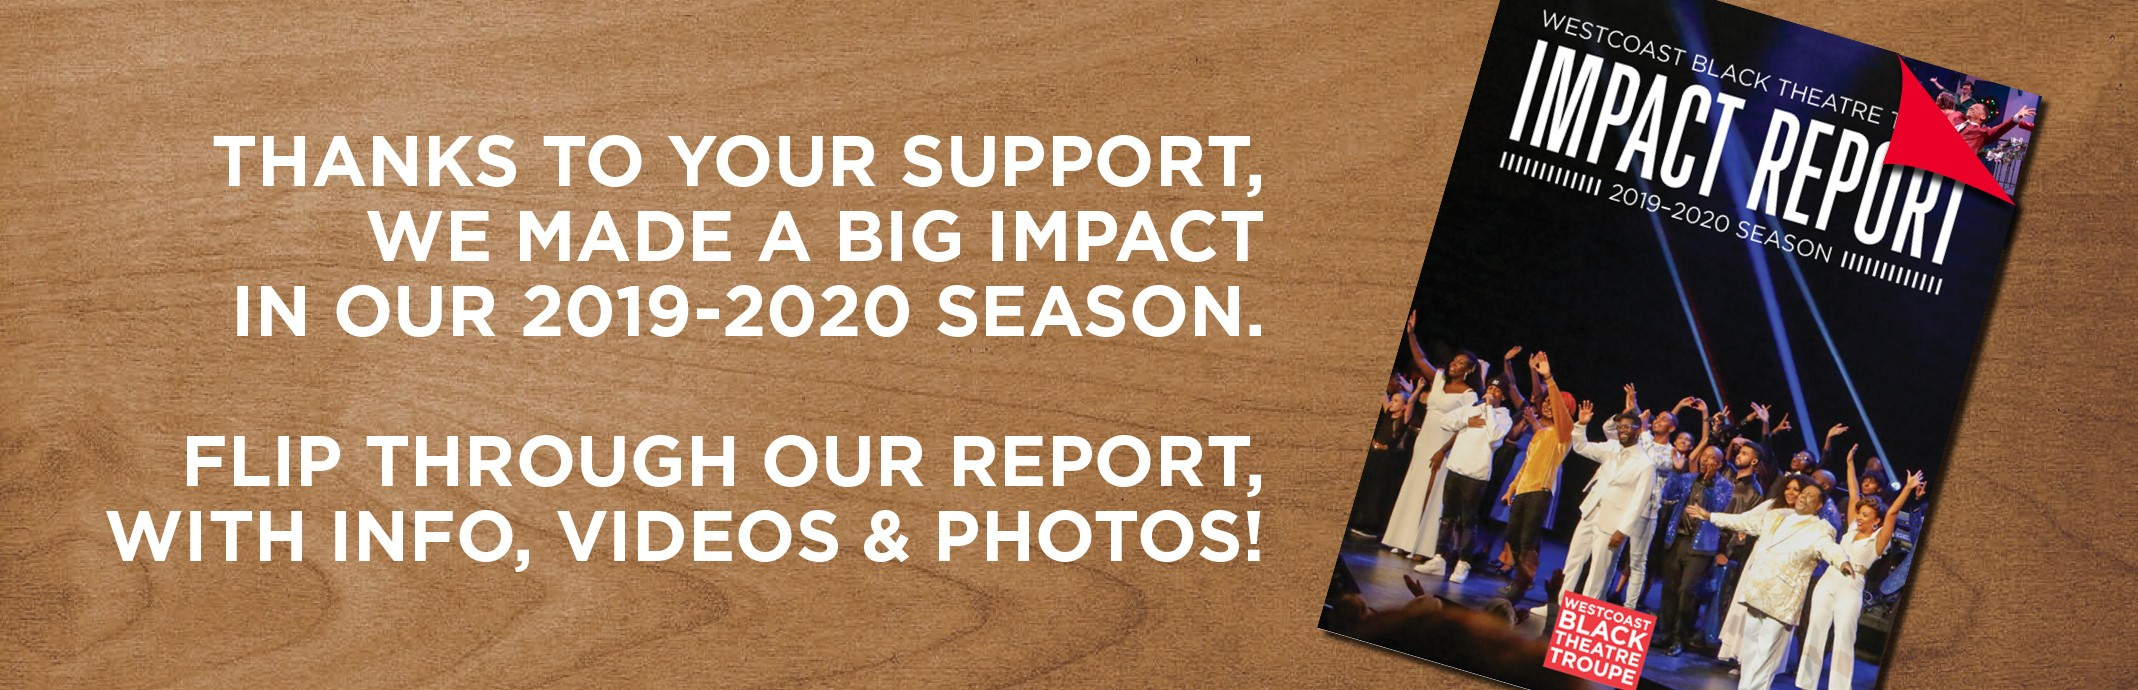 Thanks to your support, we made a big impact in our 2019-2020 season. Flip through our report, with info videos and photos!